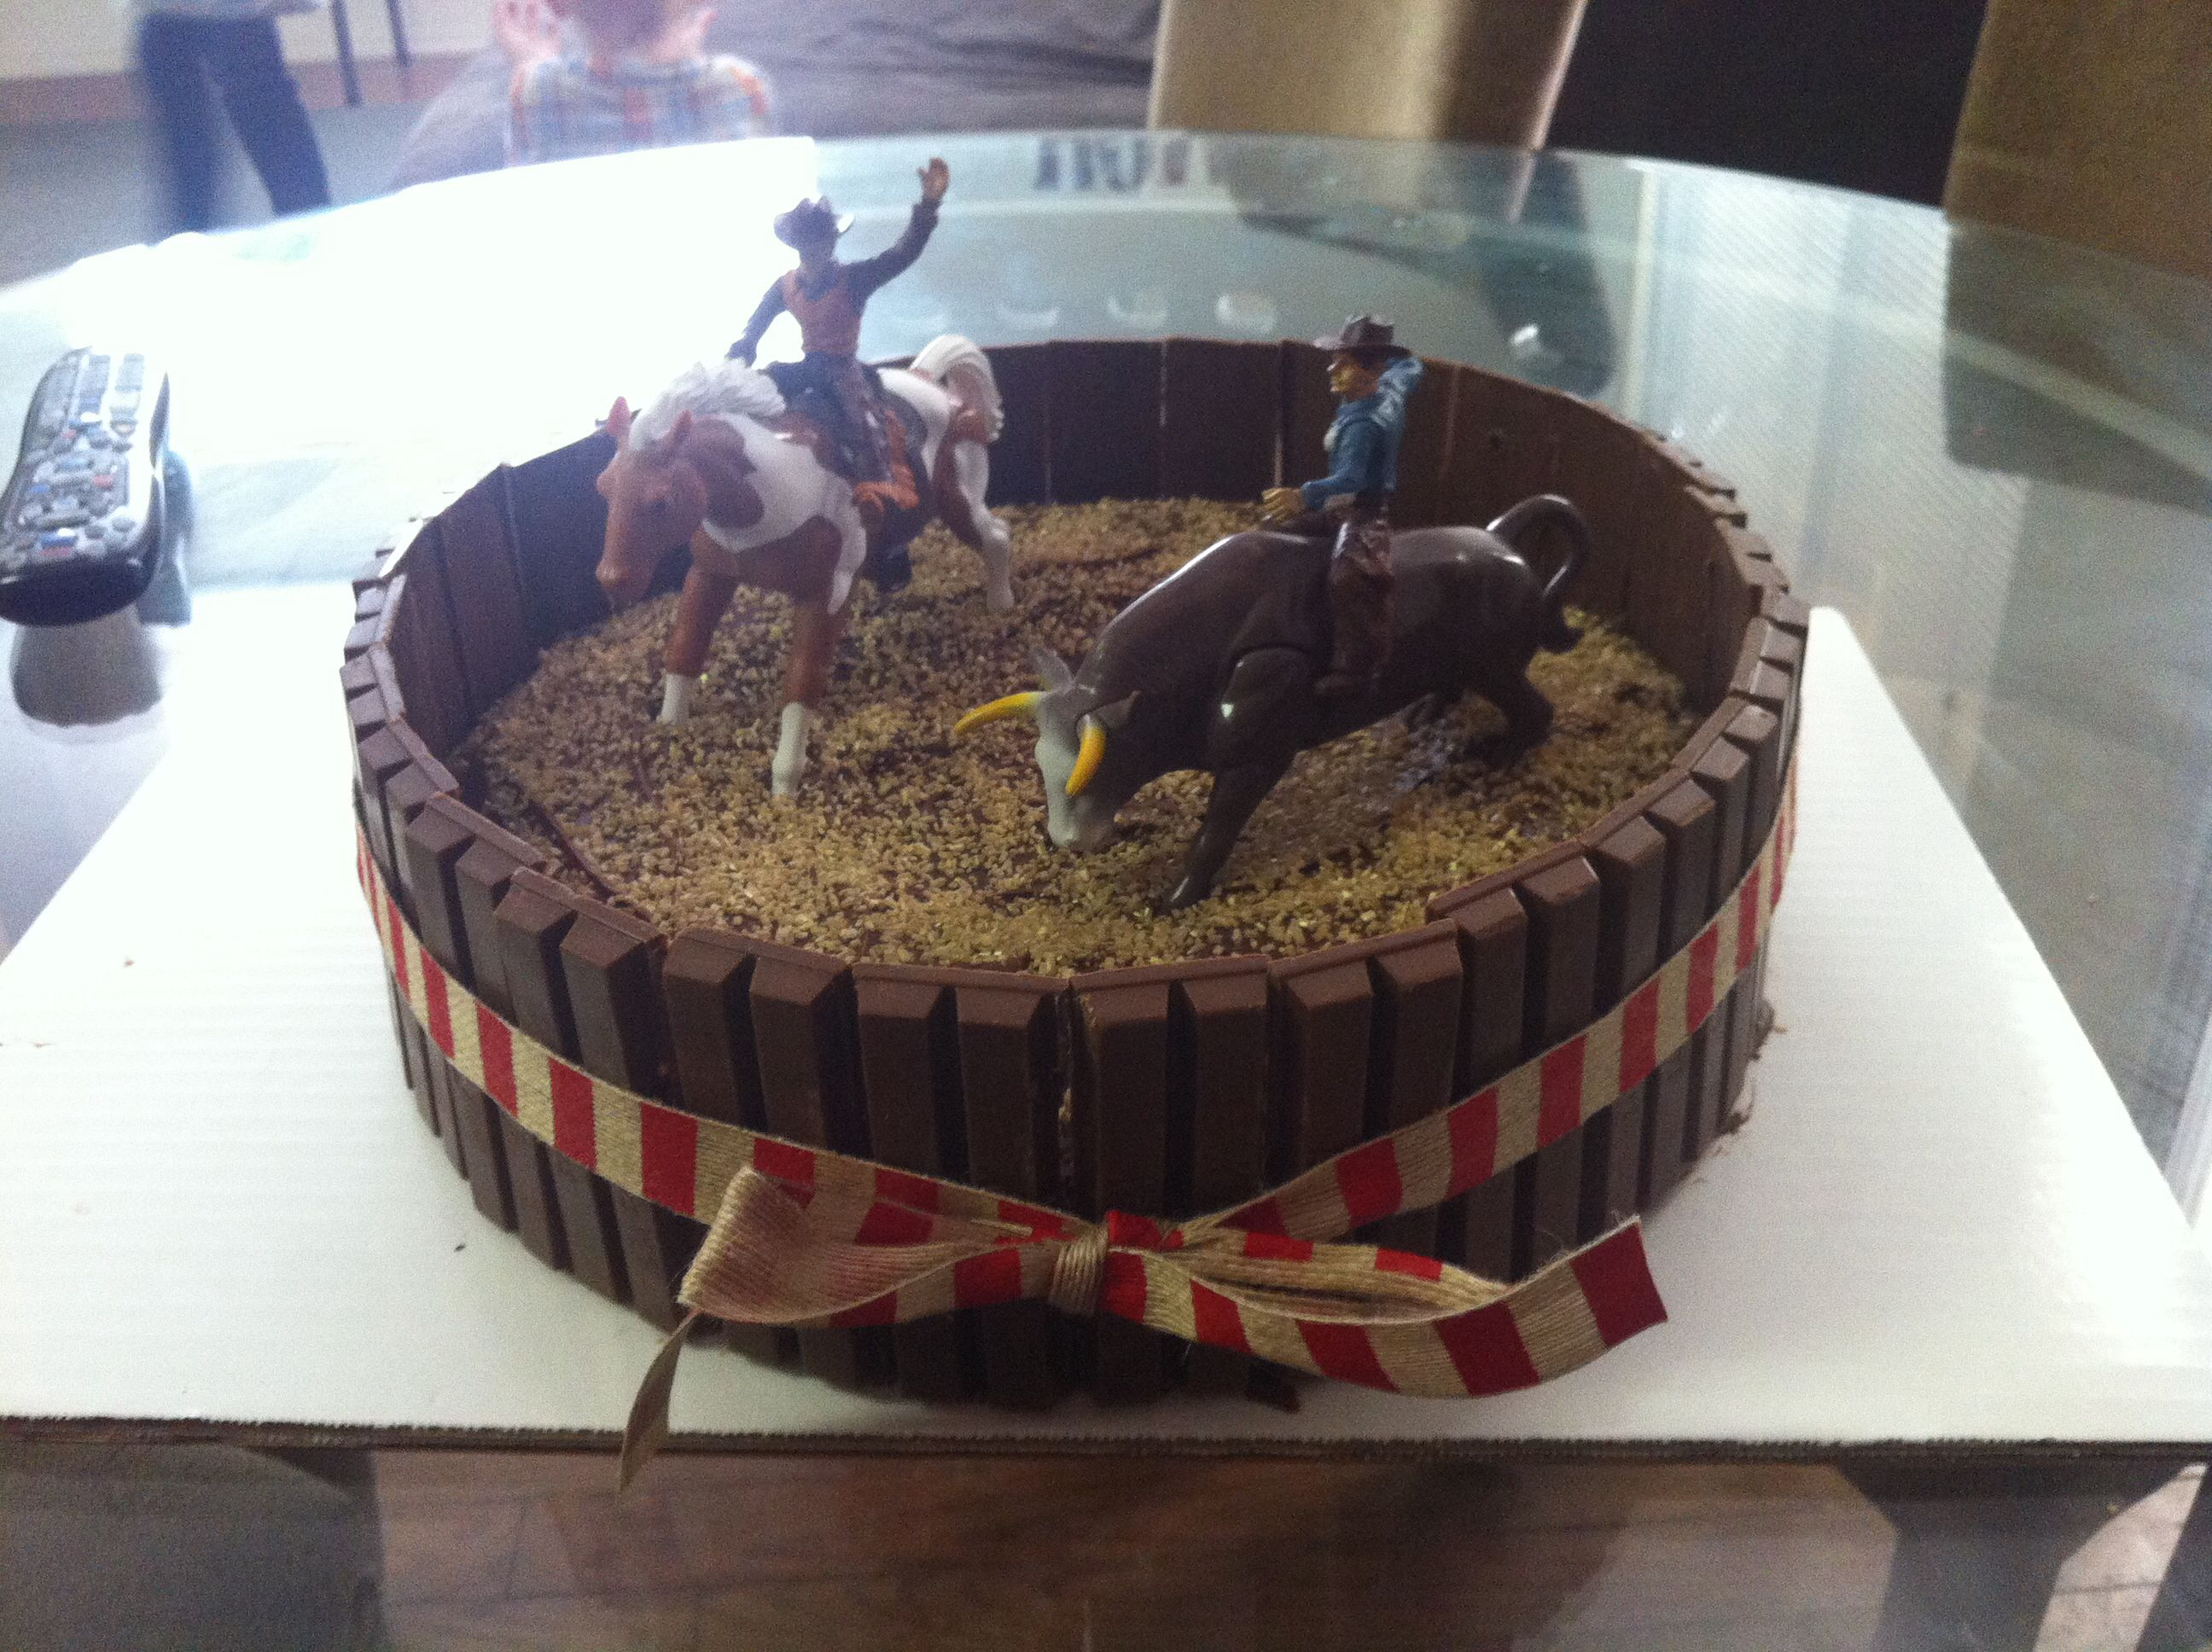 Cowboy party cake ideas - Find This Pin And More On Party Ideas Cowboy Birthday Cake For Wanye